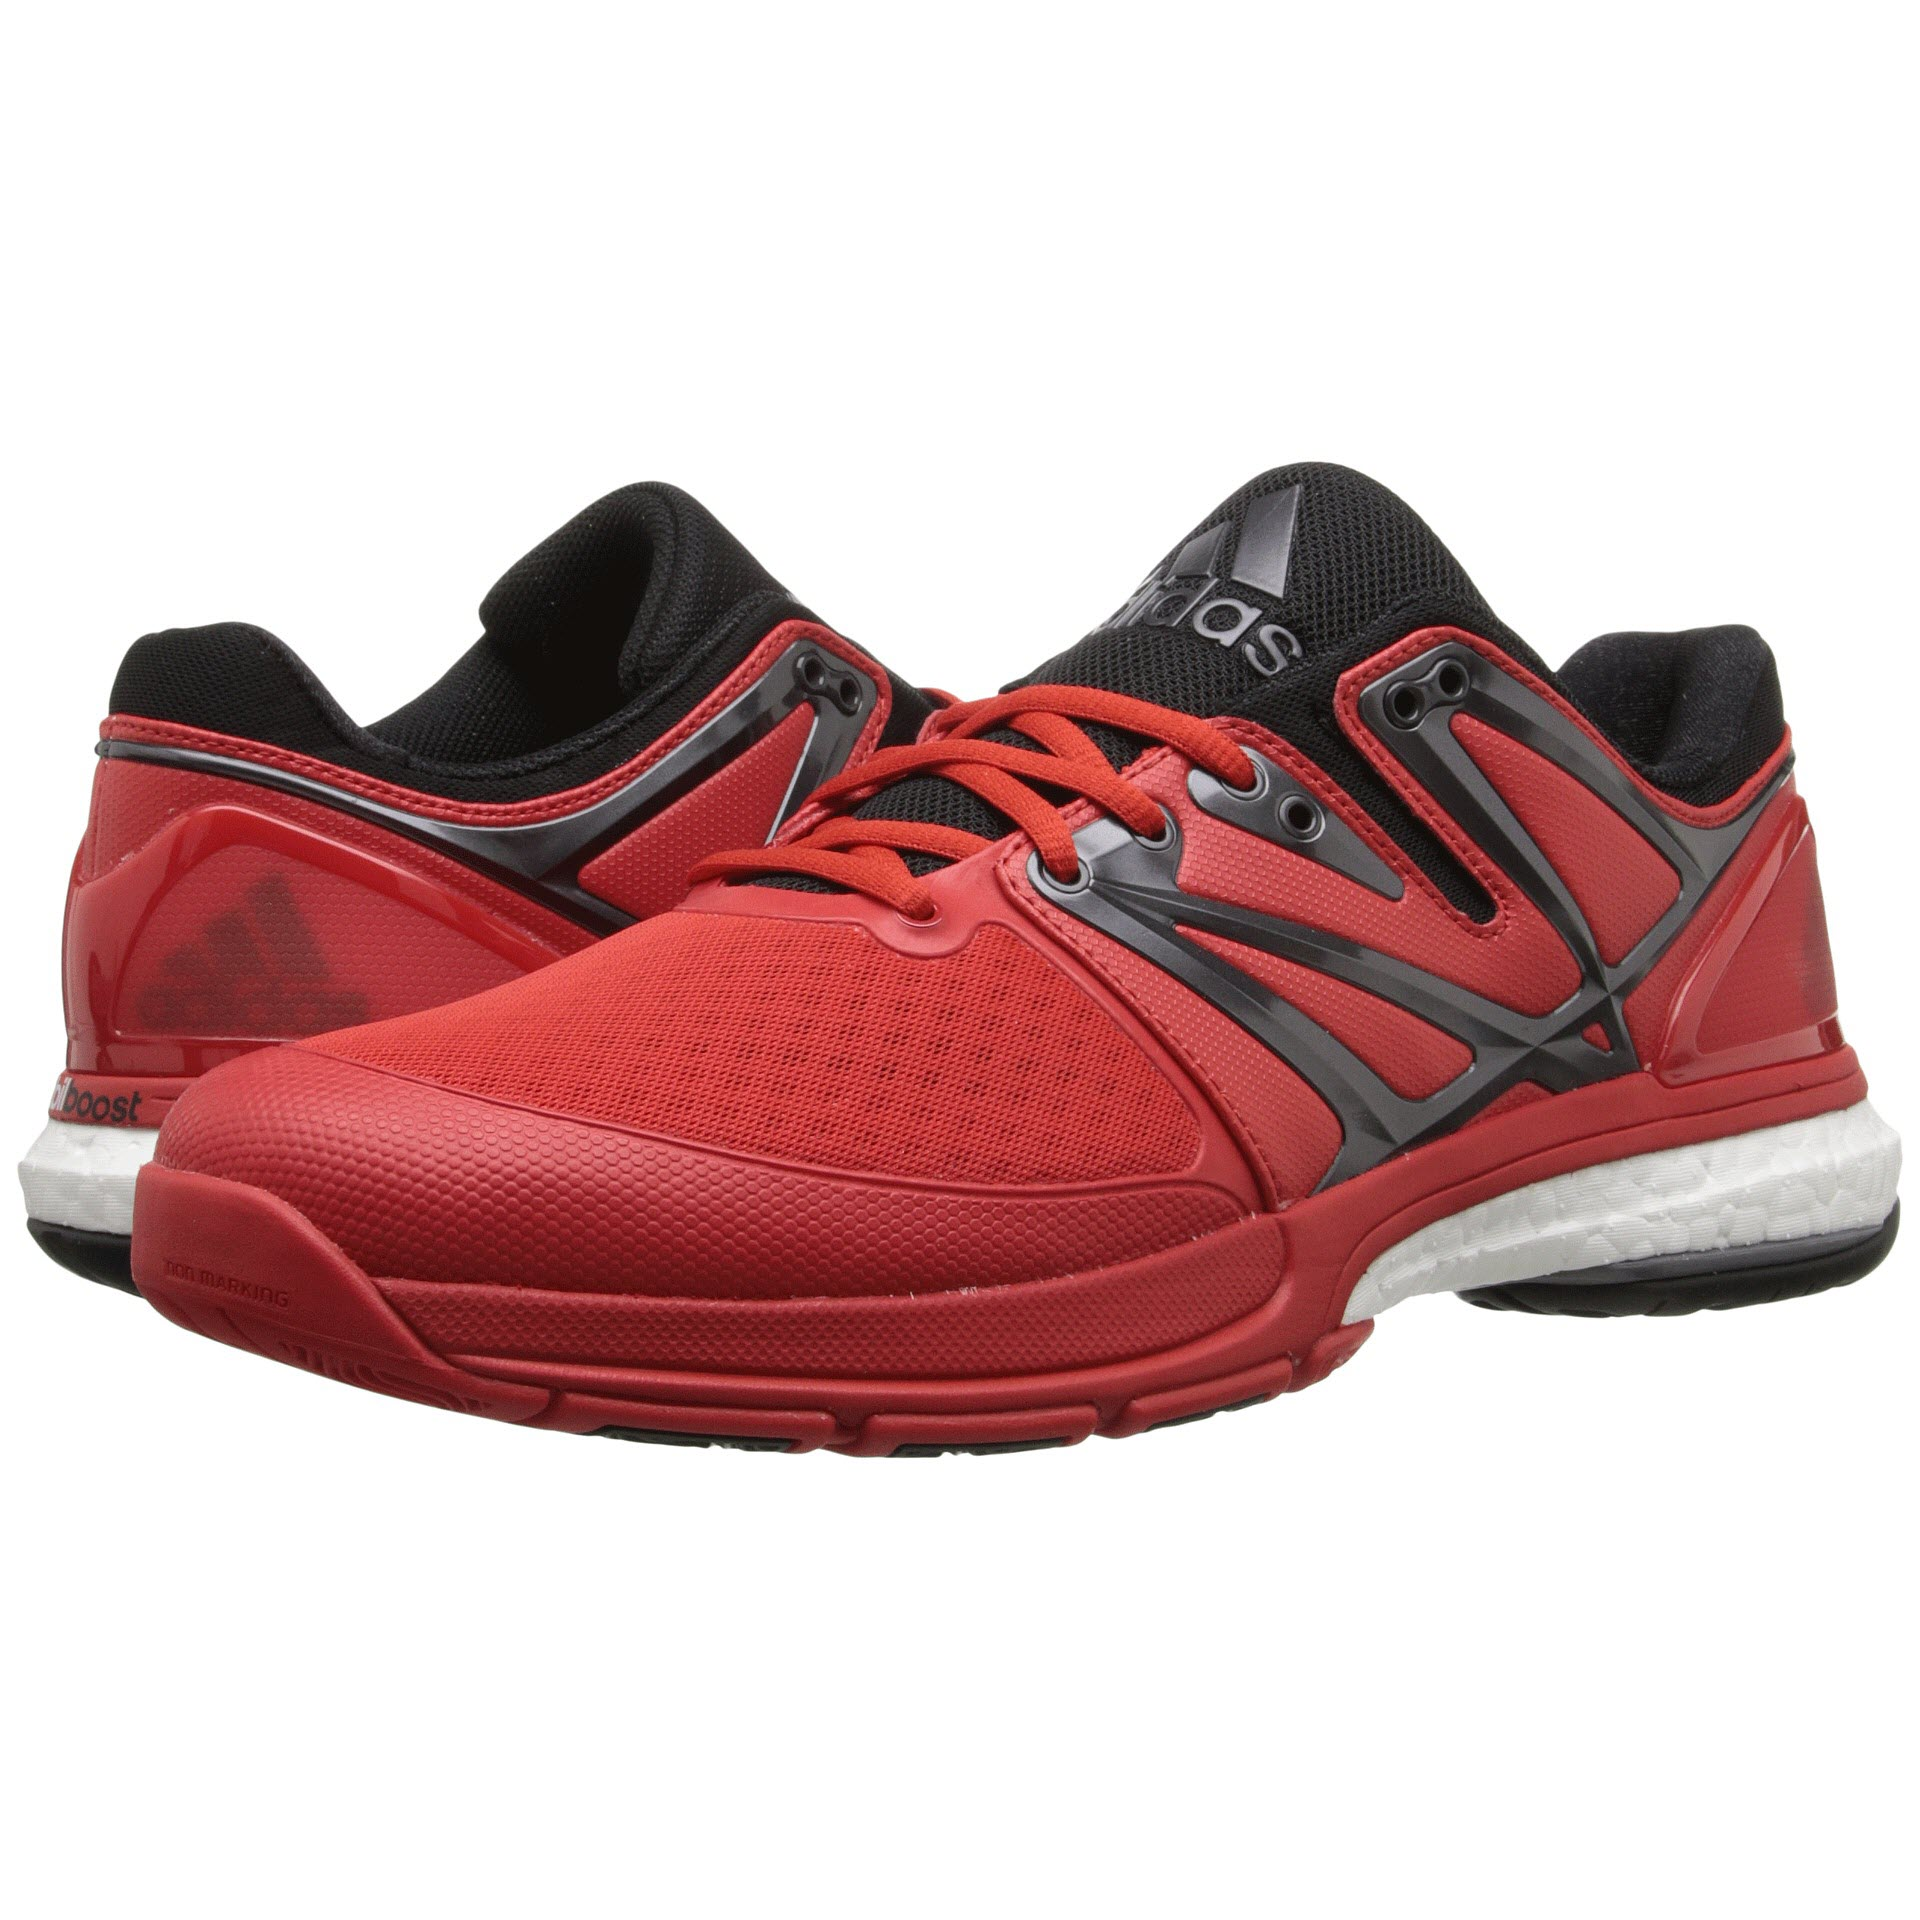 Adidas Stabil Boost Men - Red Black